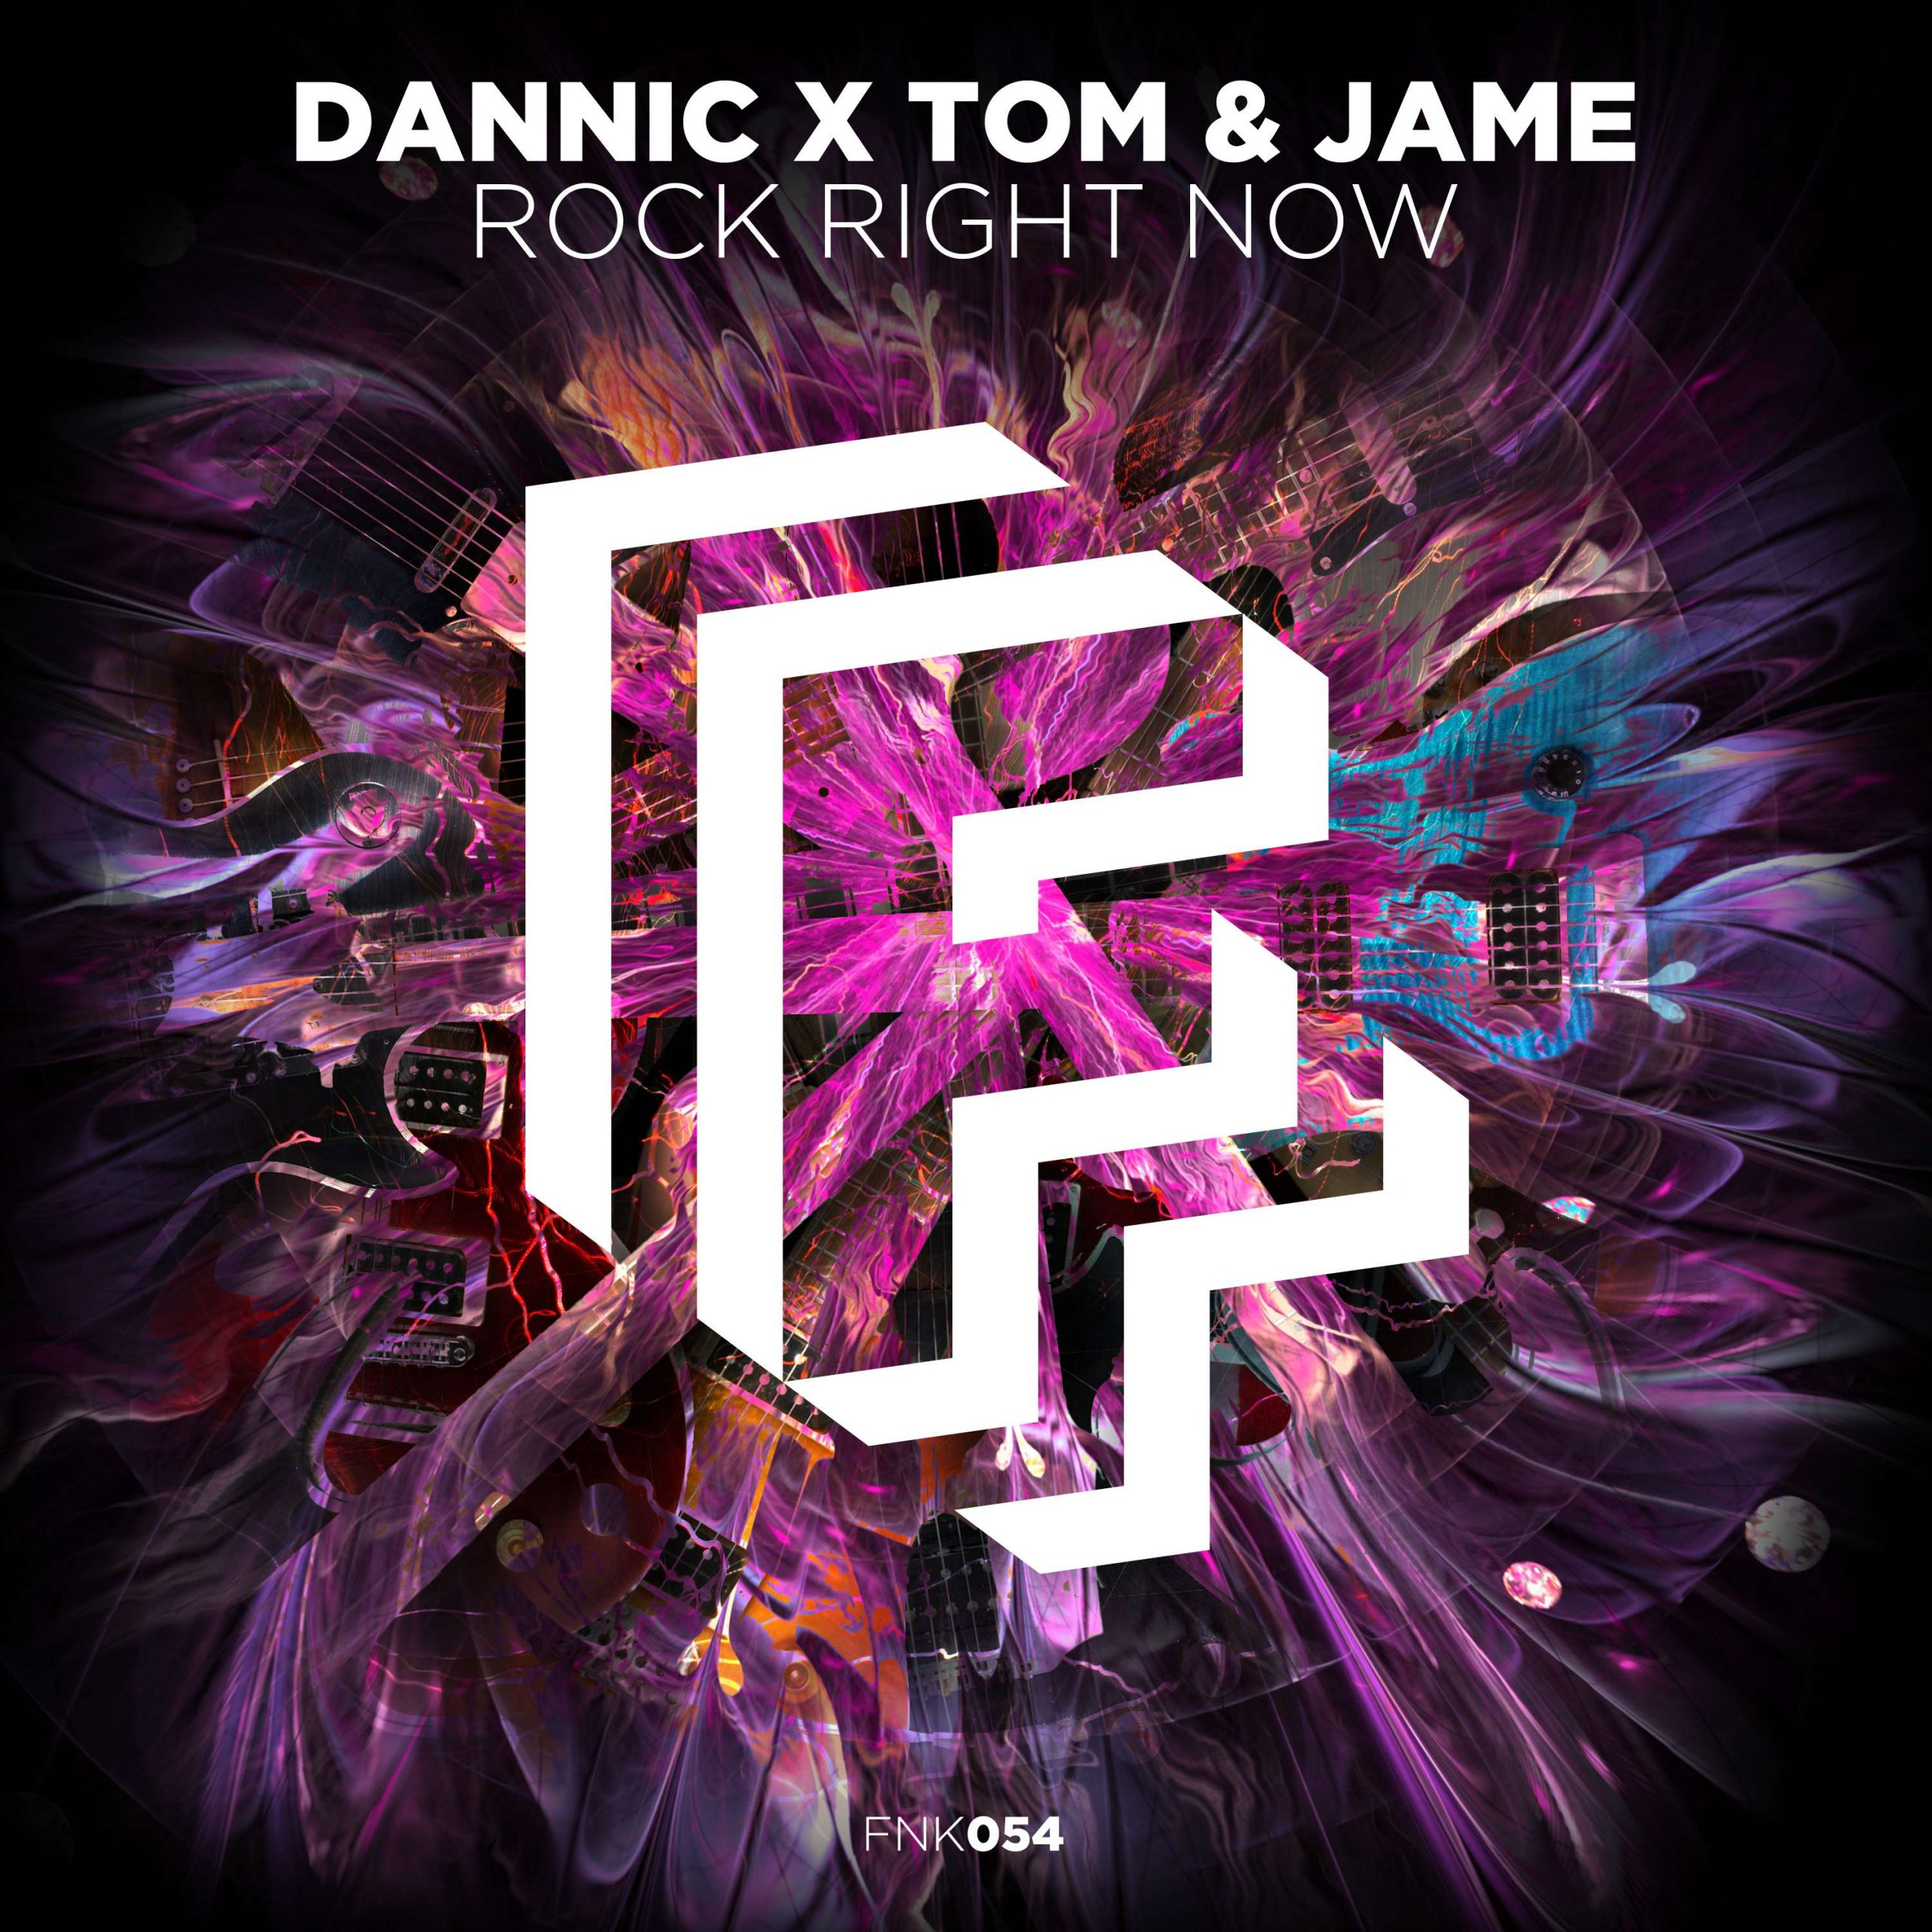 Dannic x Tom & Jame - Rock Right Now